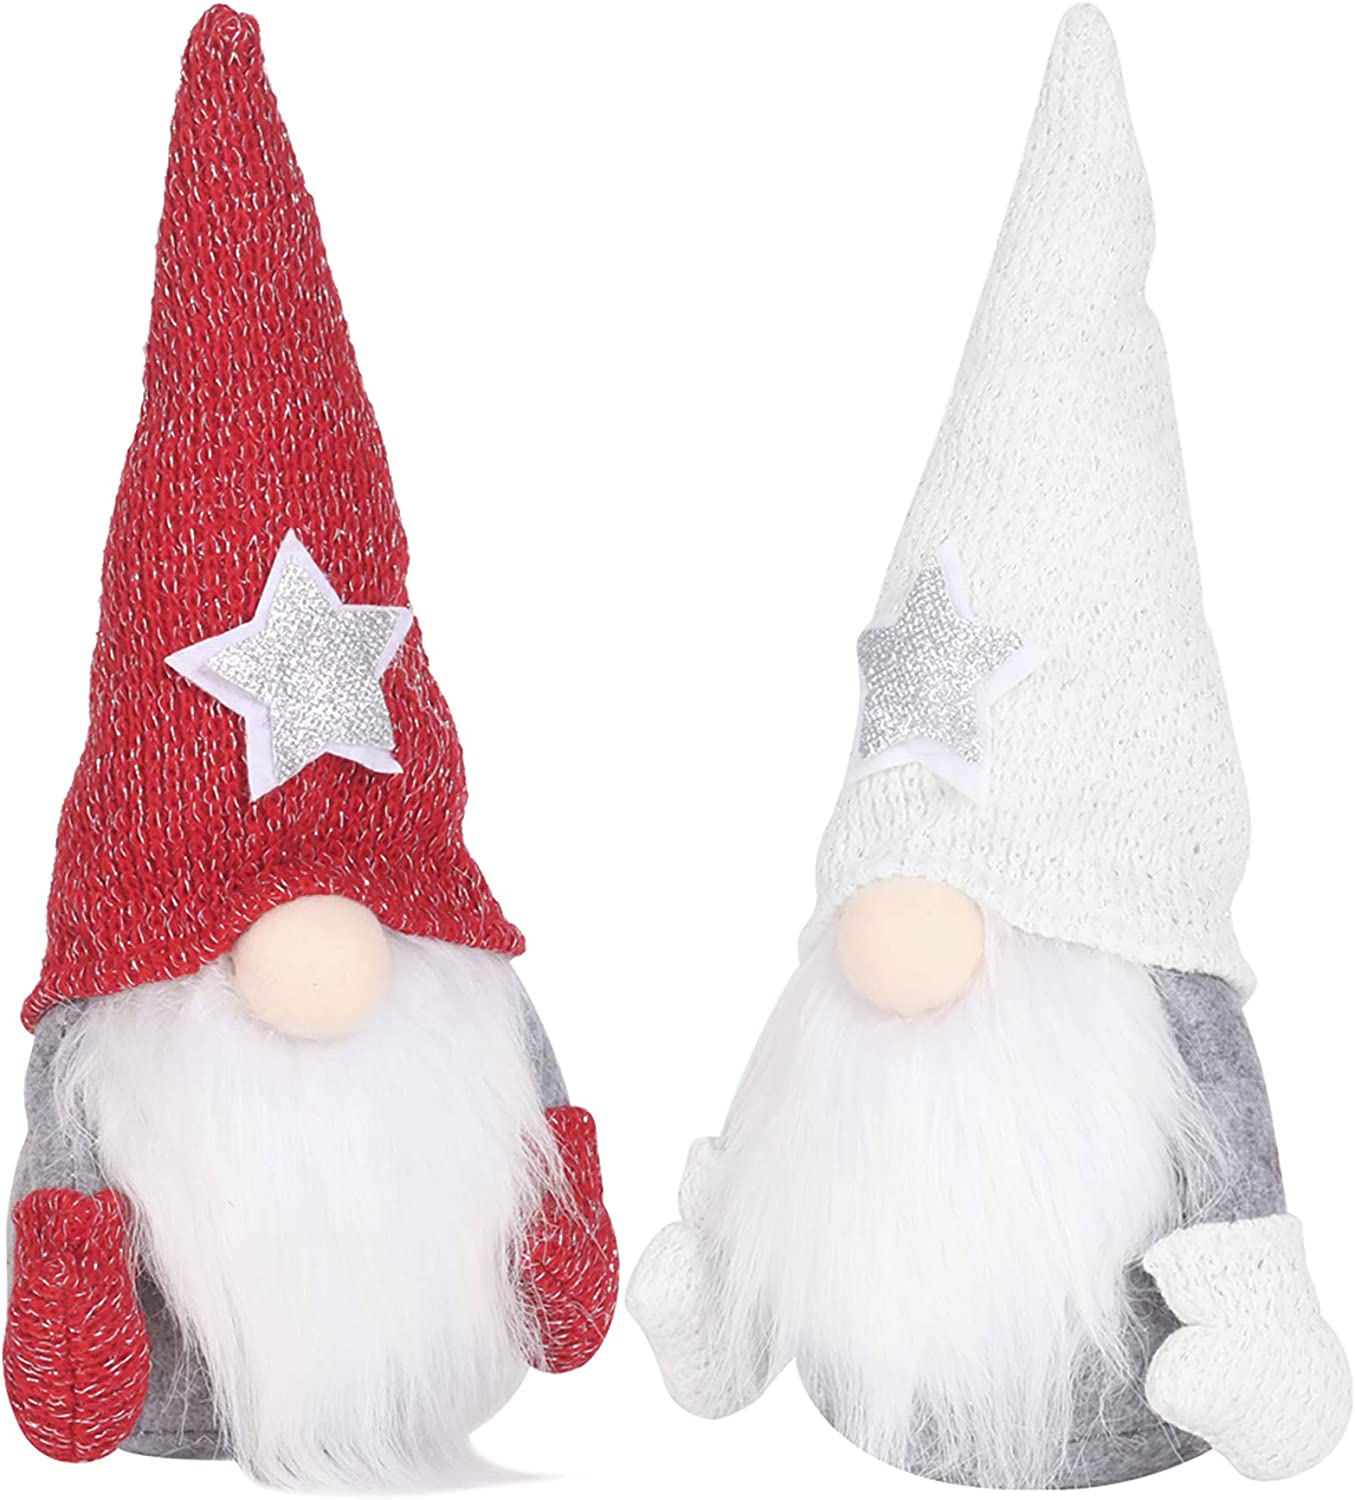 Cotill Christmas Gnome Plush, 2pcs Holiday Gnomes Scandinavian Swedish Tomte Set Figurines Christmas Ornaments Christmas Decoration for Home Table Decor - 11.5 Inches (White and Red)